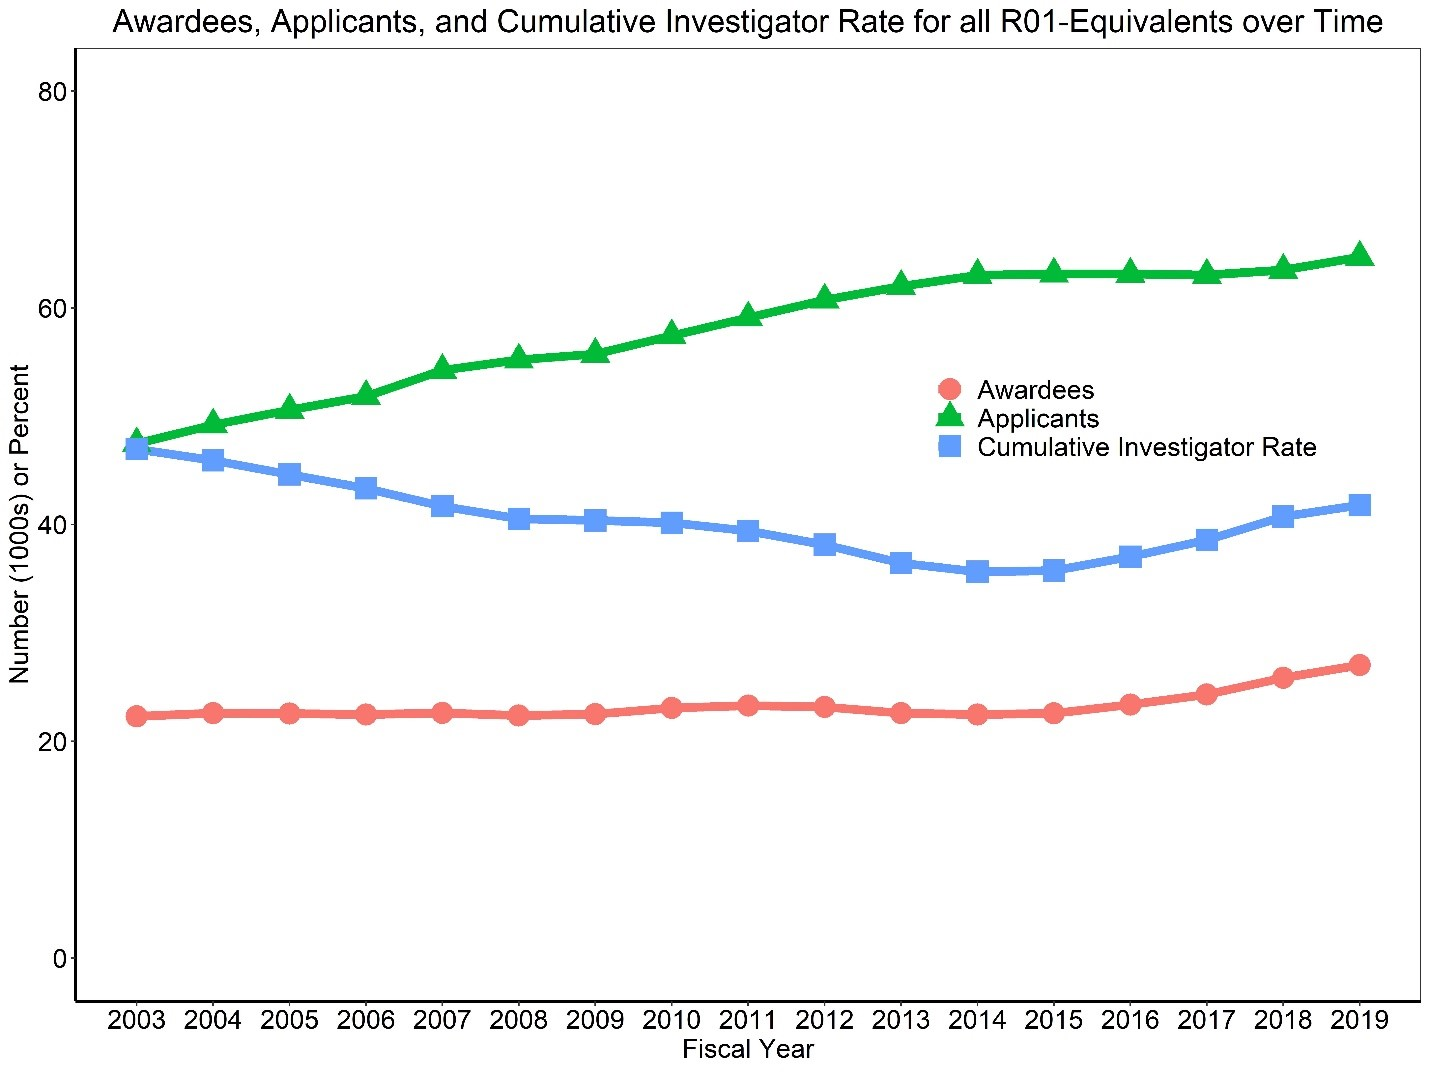 Figure 2 shows a line graph with applicants, awardees, and the Cumulative Investigator Rate for R01-equivalent grants over time. The X axis is fiscal years 2003 to 2019, while the Y axis is either the absolute number for applicants and awardees or a percent for the Cumulative Investigator Rate from 0 to 100. Awardees, applicants, and the Cumulative Investigator Rate are shown in separate red circle, green triangle, and blue square lines, respectively.